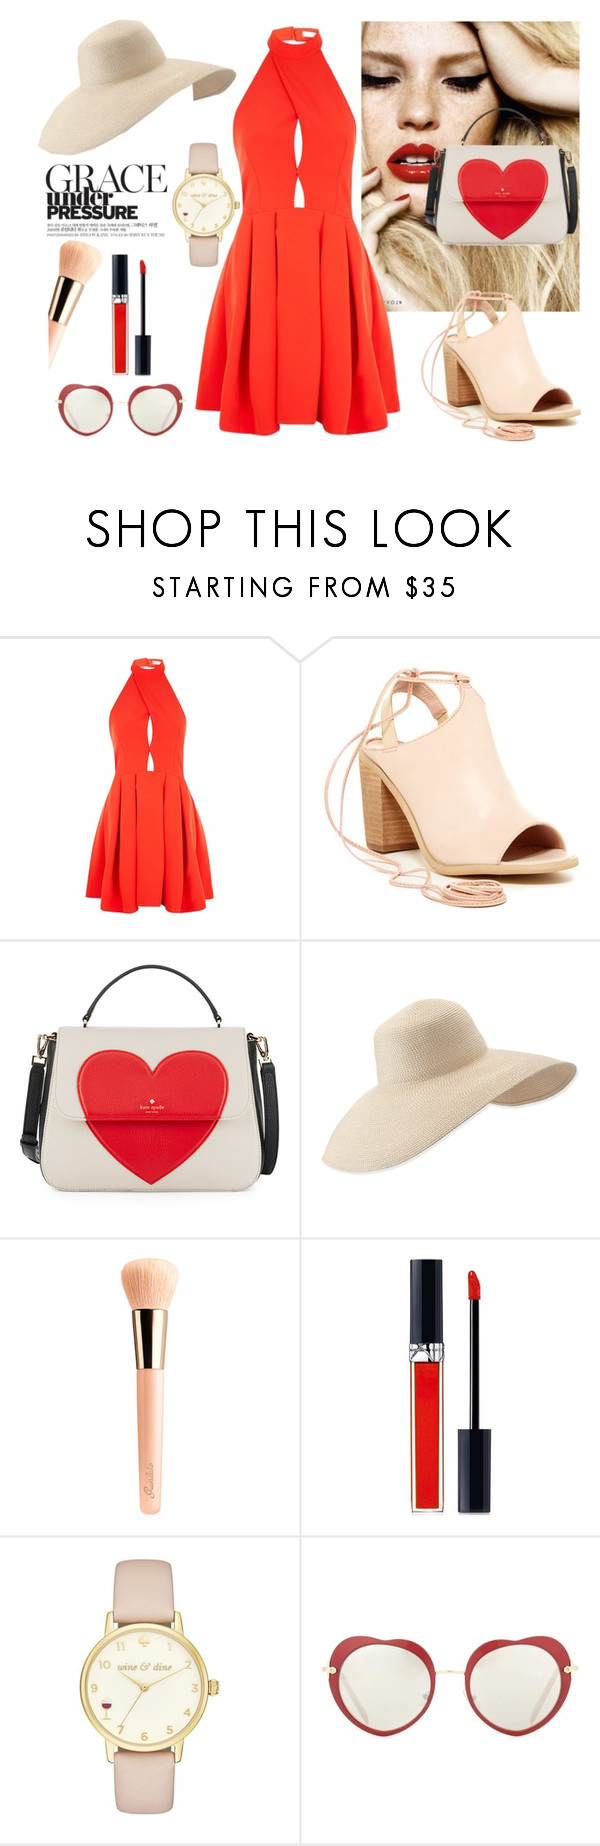 """""""Hot in red"""" by yara-mikhael-deeb ❤ liked on Polyvore featuring Oh My Love, Rebels, Kate Spade, Eric Javits, Guerlain, Christian Dior and Miu Miu"""